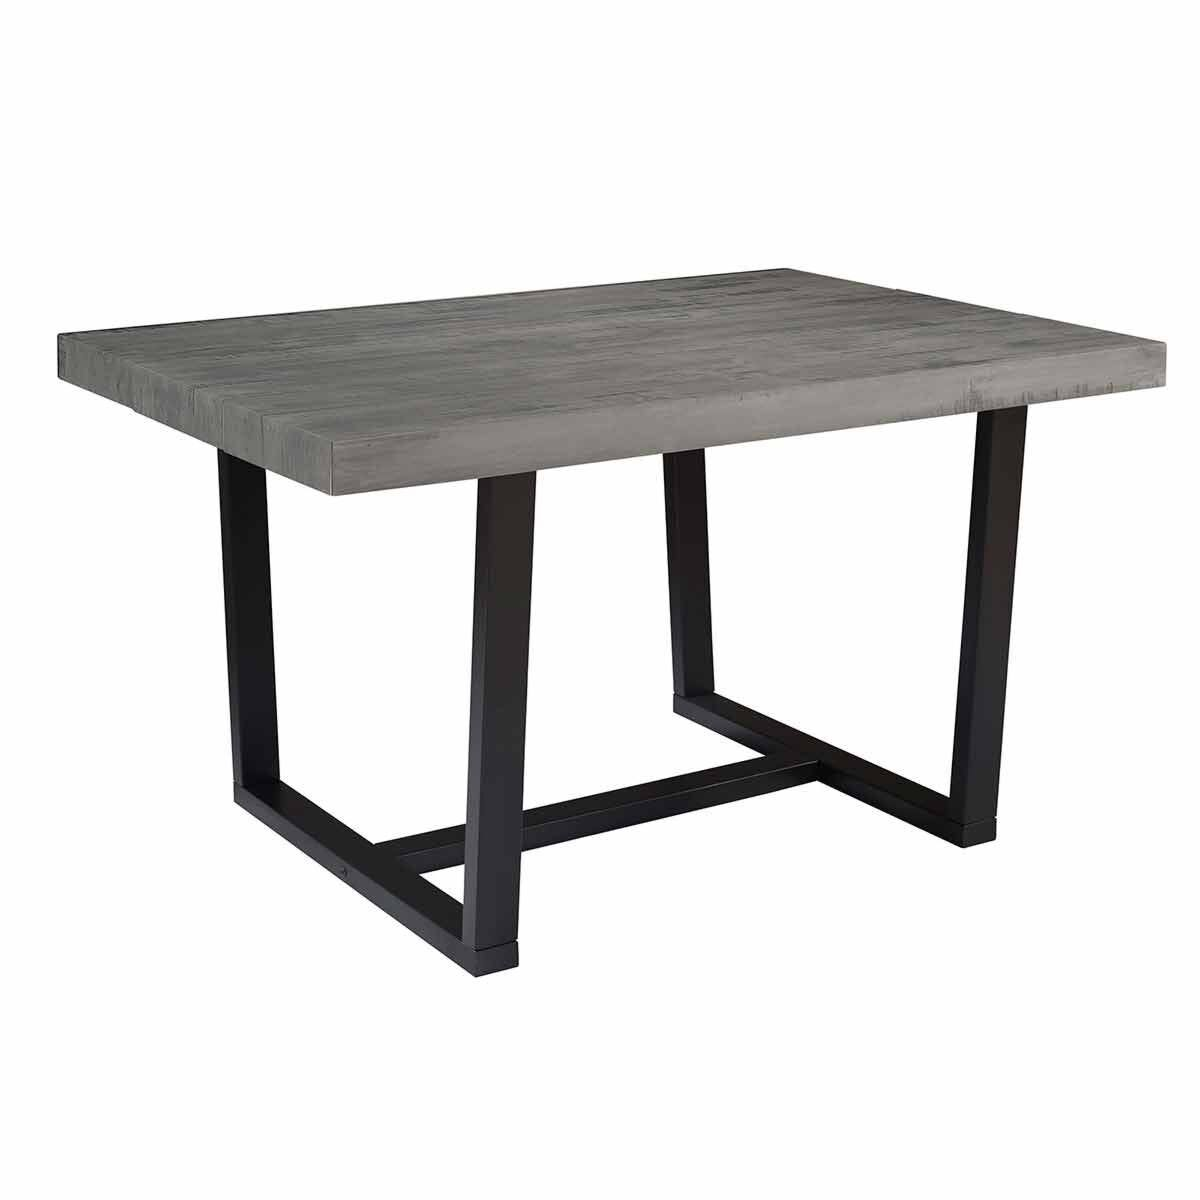 Rimini Distressed Solid Wood Dining Table Grey